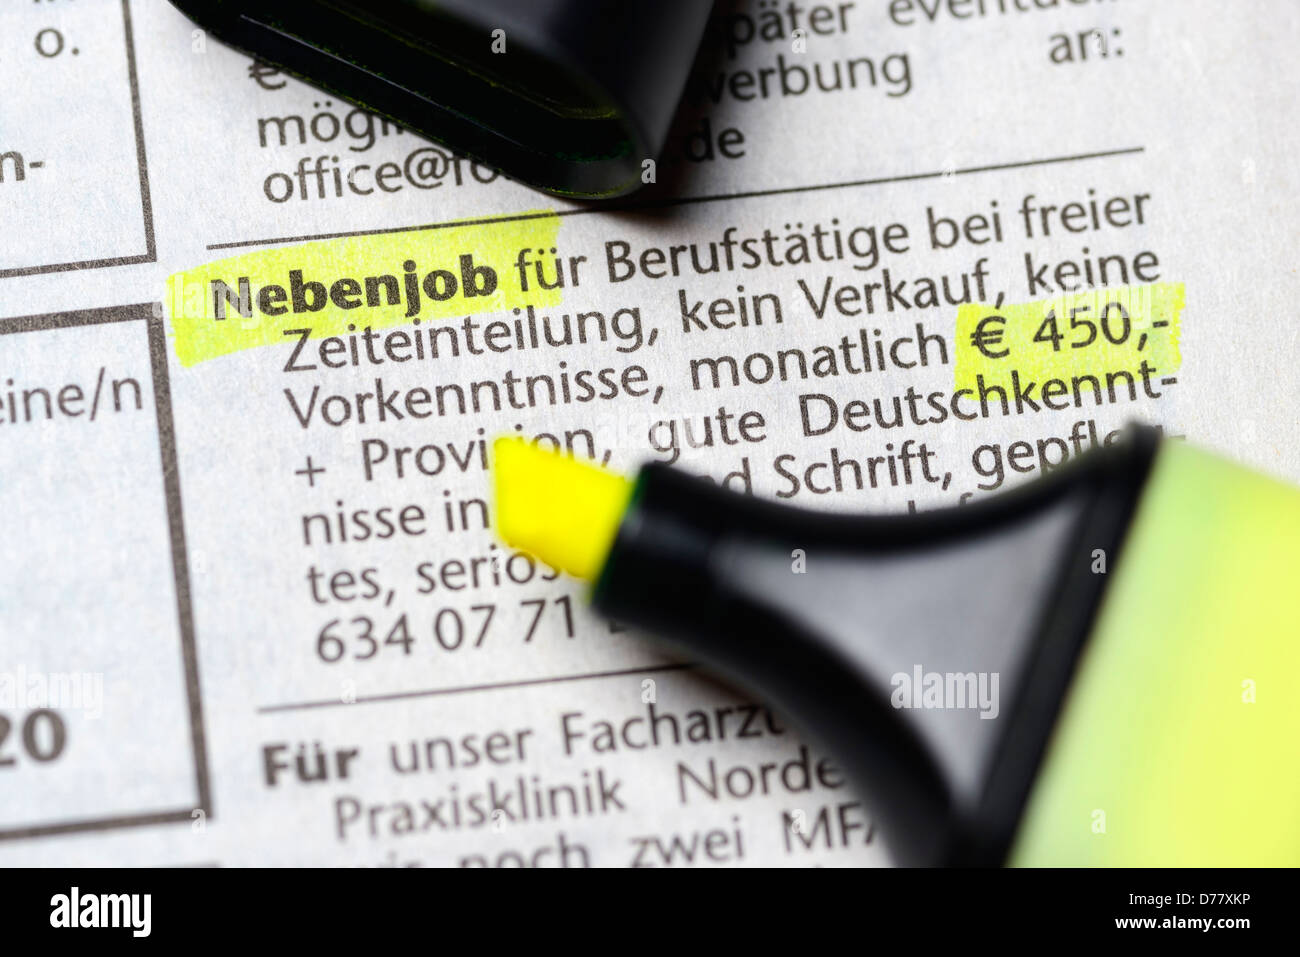 Announcement for a part-time job on 450 euros of base, minijobs - Stock Image